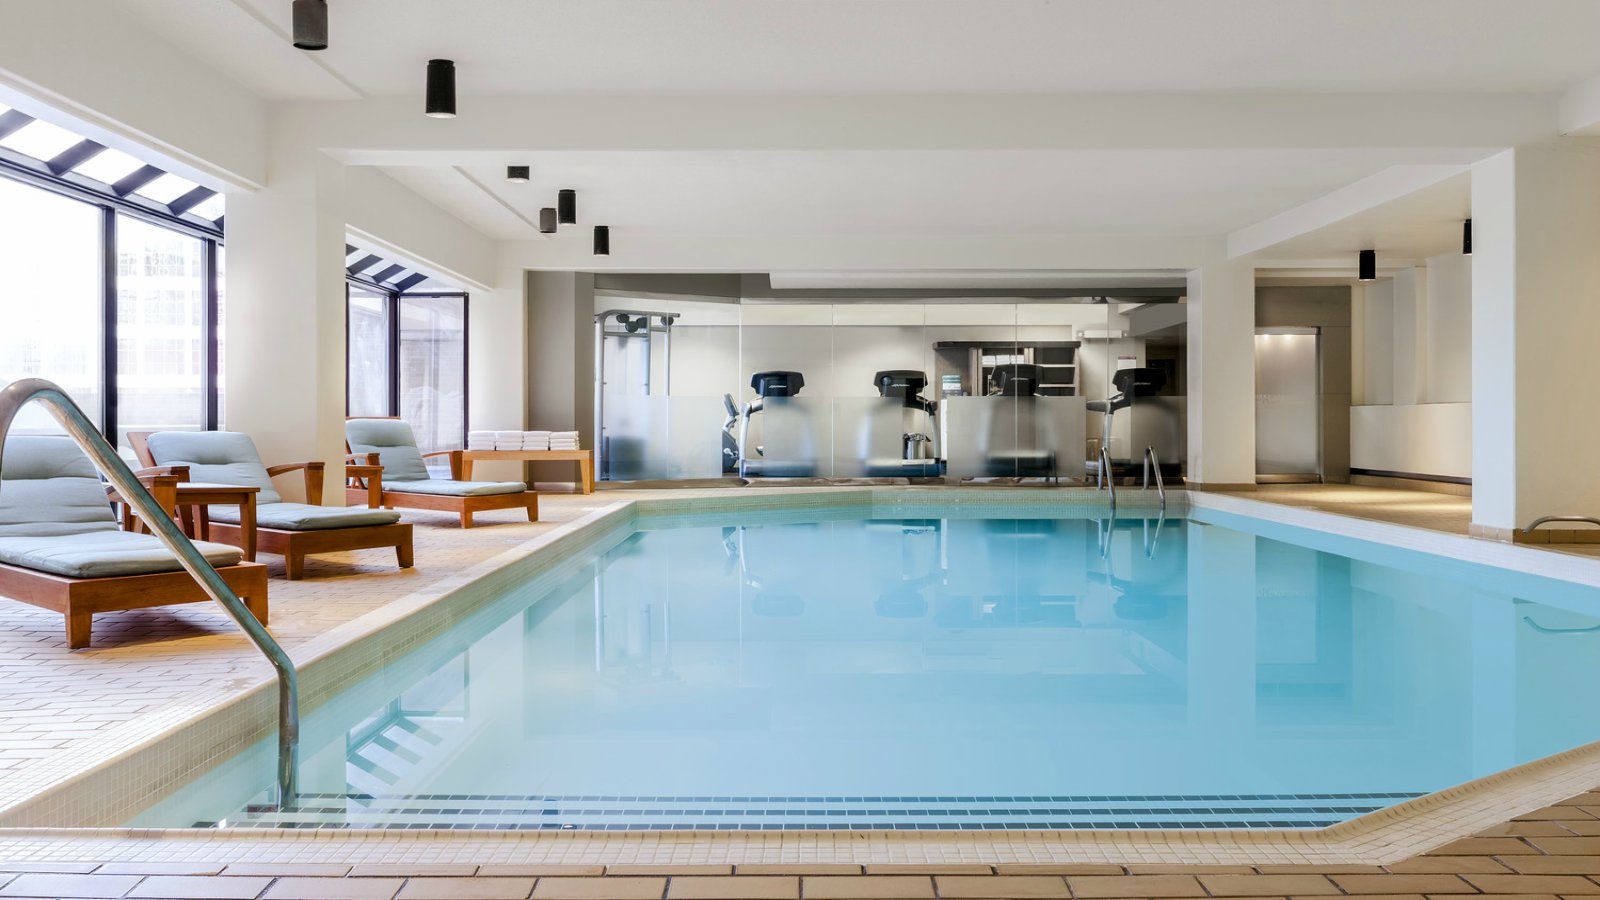 Edmonton Alberta Hotels - Indoor Heated Pool